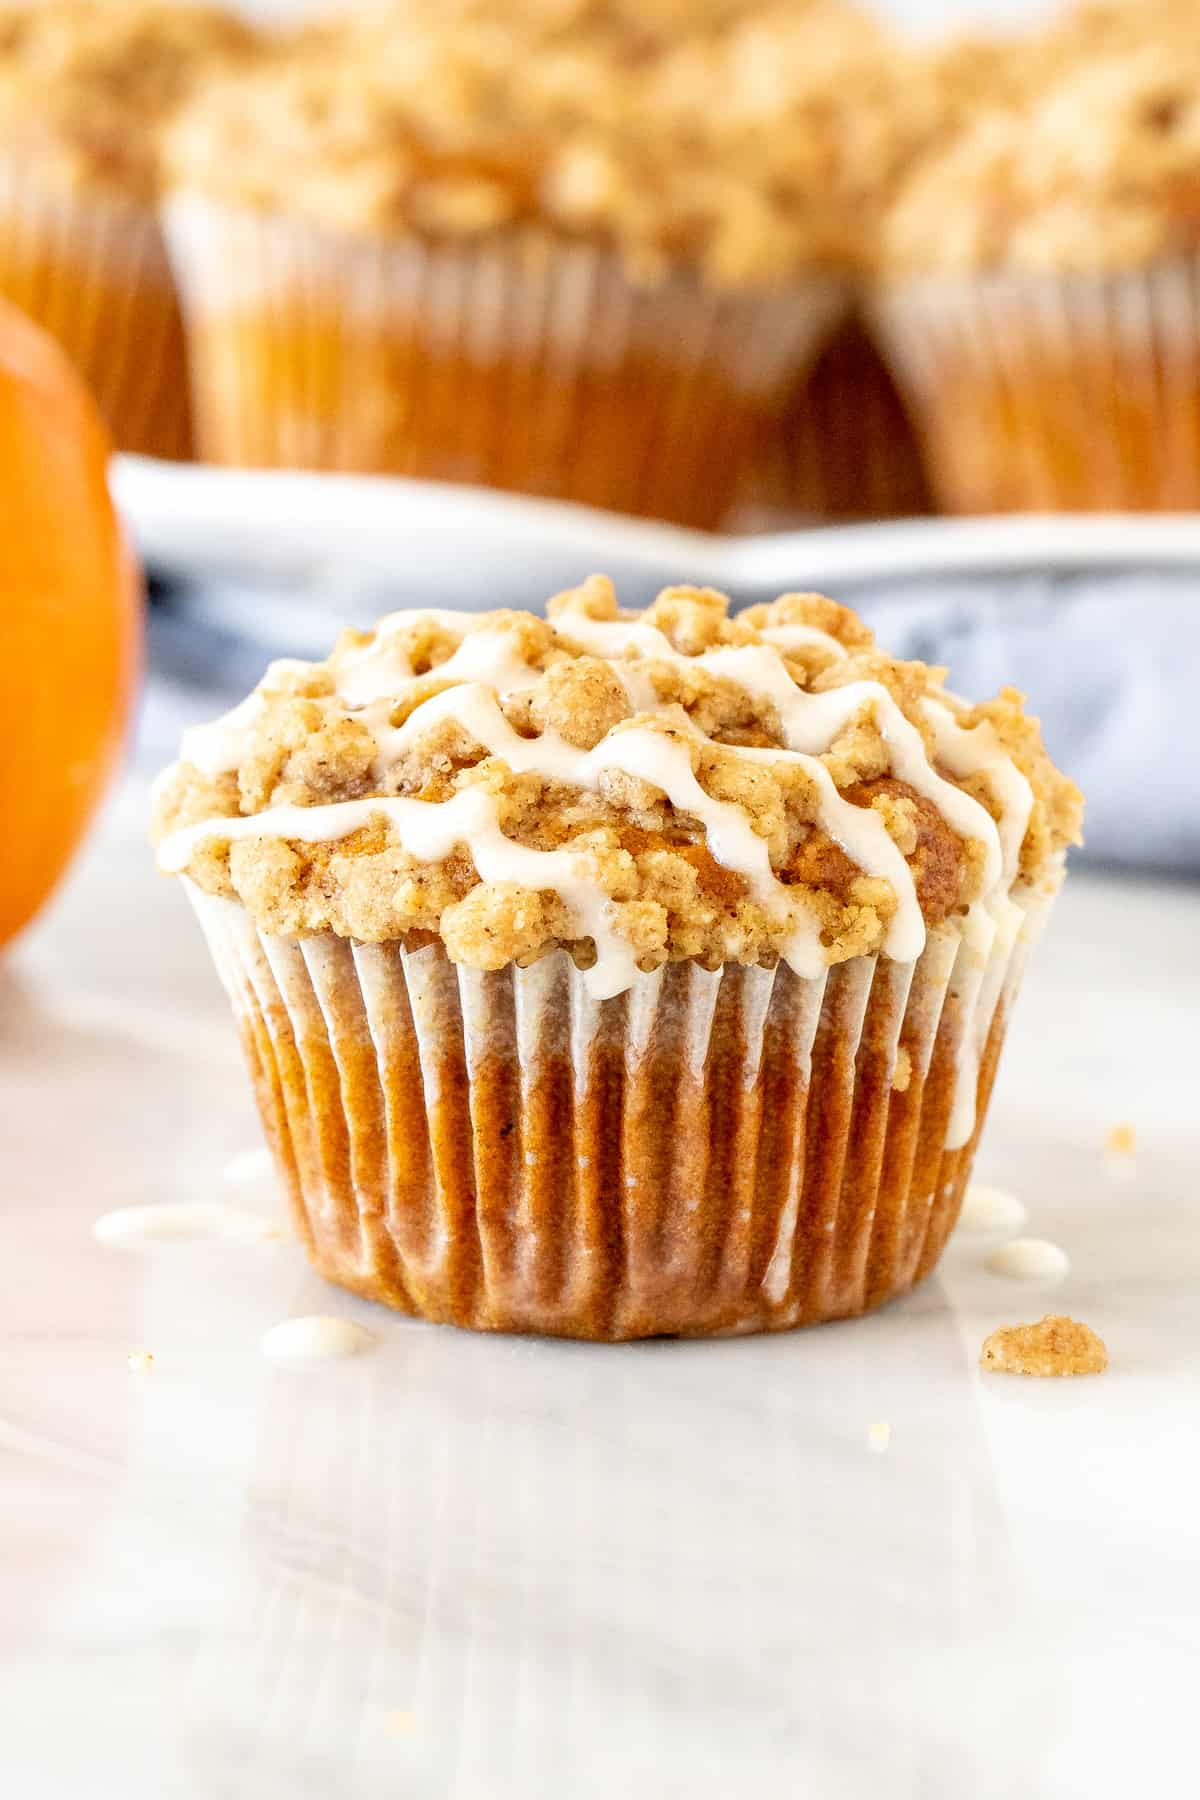 Pumpkin streusel muffin with a drizzle of glaze